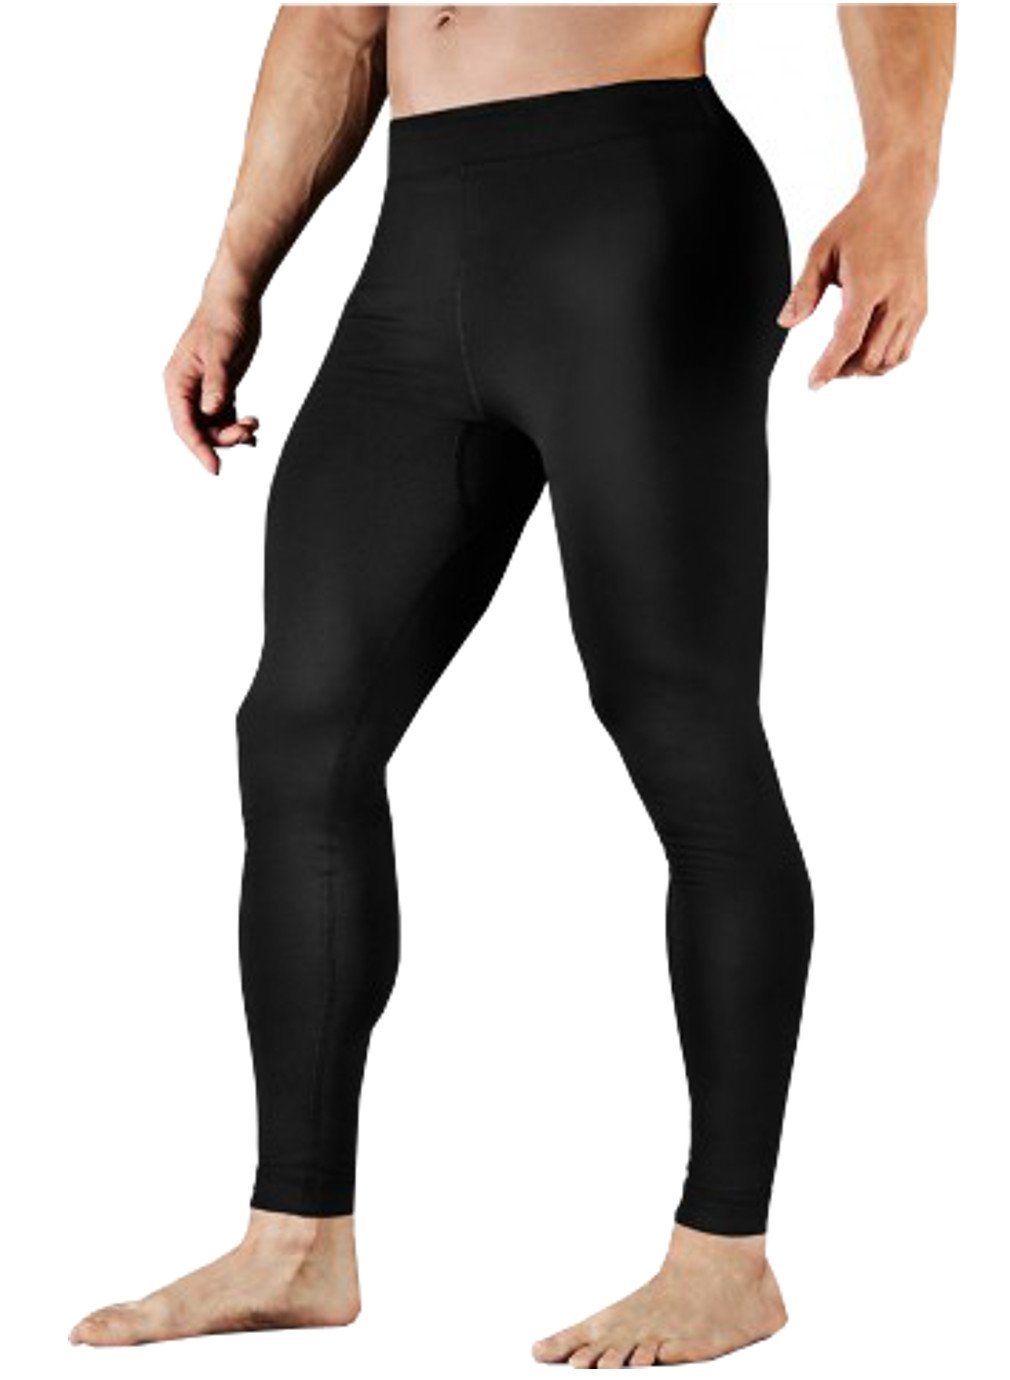 eeee7cdec9 Tommie Copper Men's Core Compression Tights -- Free Shipping -- Ithaca  Sports